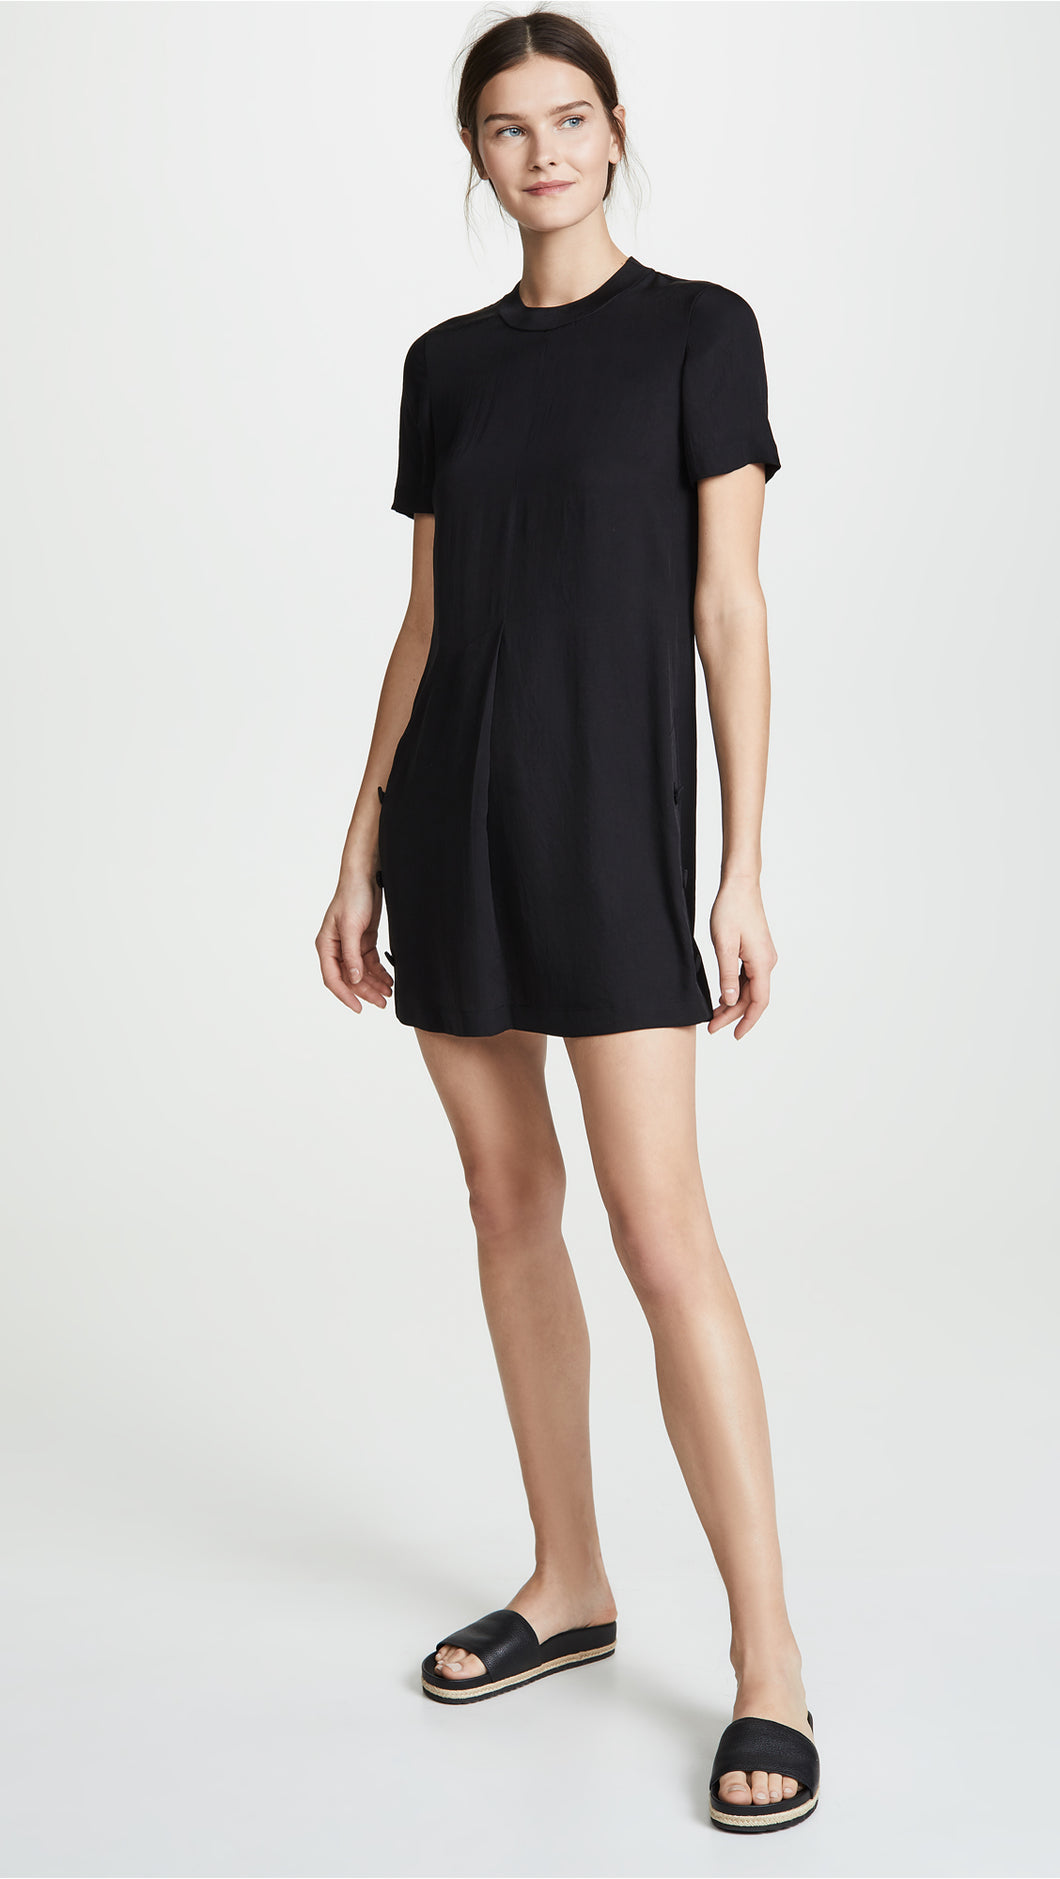 Rag & Bone Aiden Tee Shirt Dress - Size M